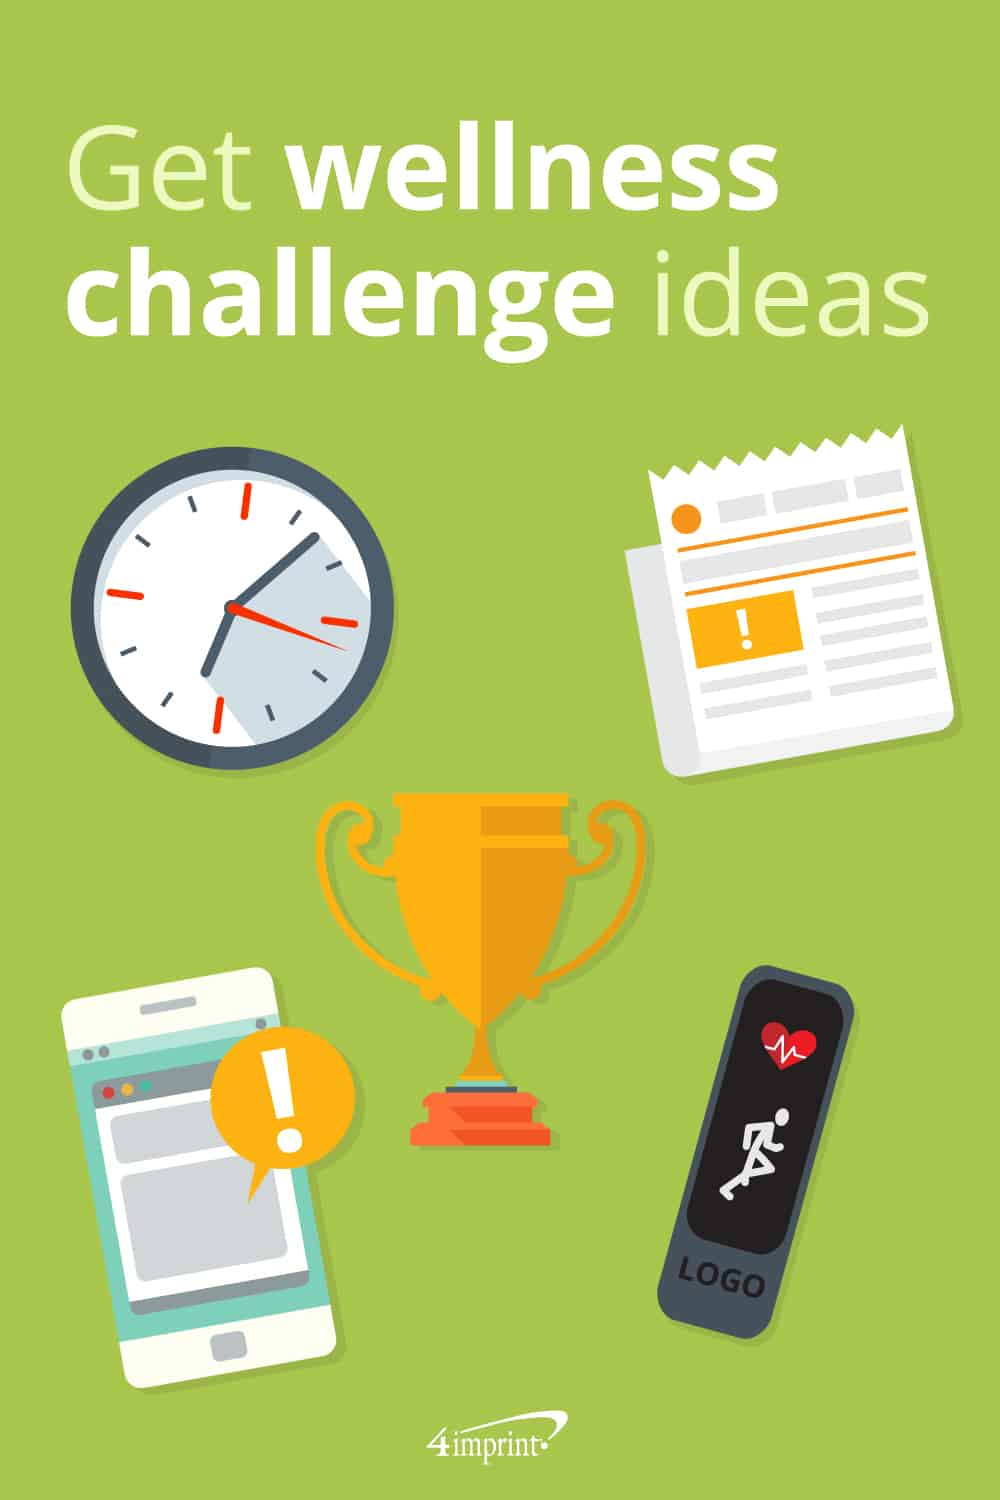 Get wellness challenge ideas - pinable graphic about wellness giveaways